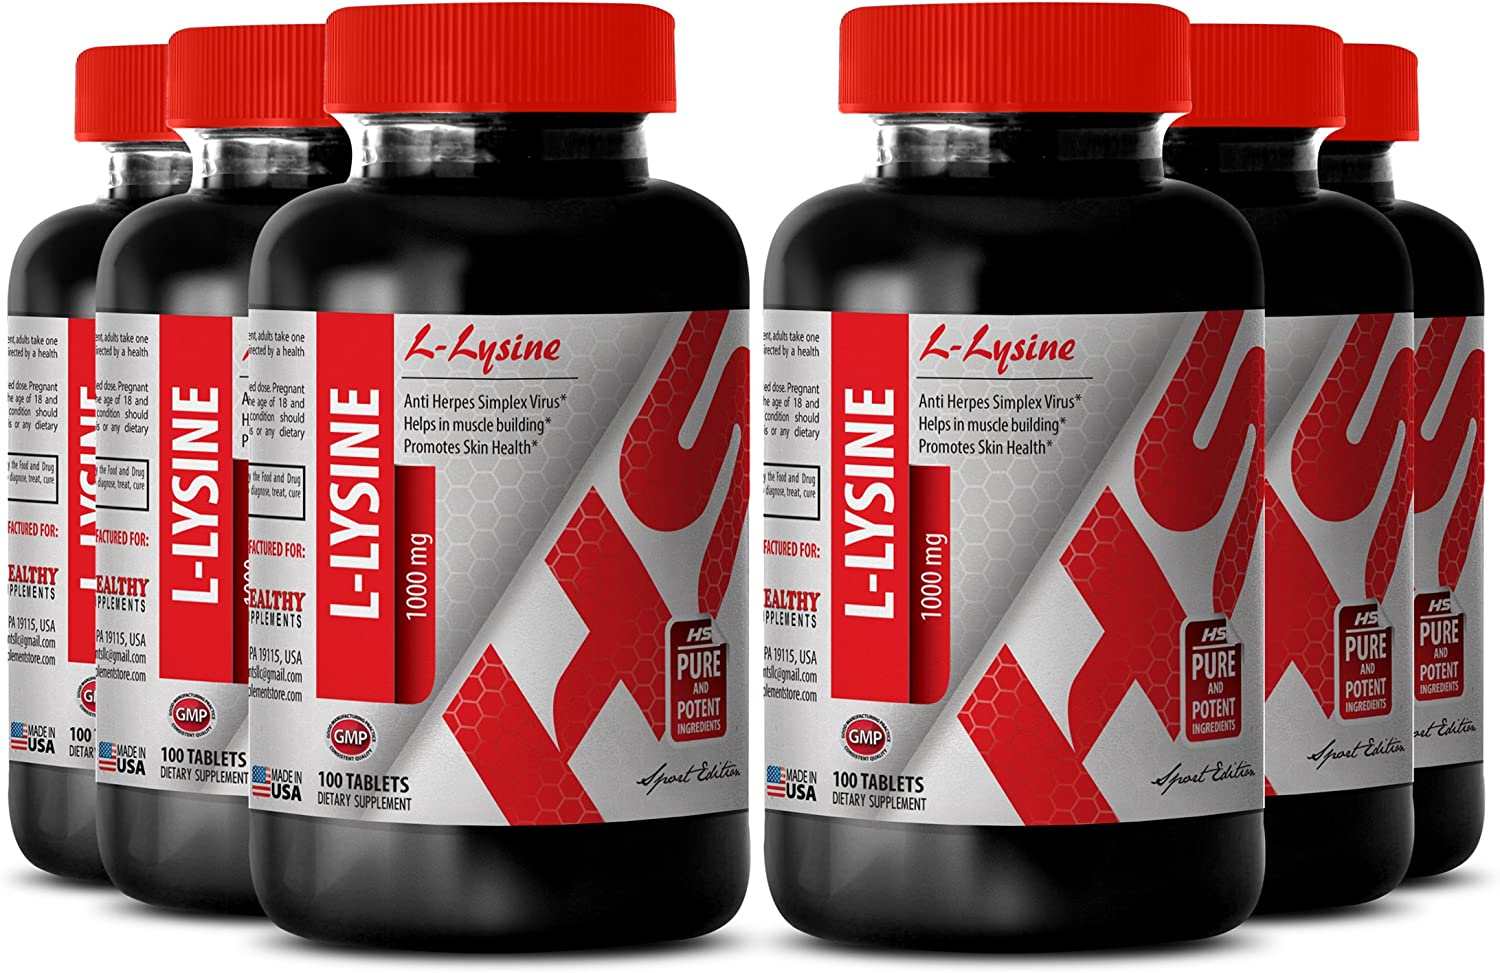 L-lysine Free shipping Bargain sale anywhere in the nation Pure Powder - L-LYSINE Supplement Support MG Ner 1000